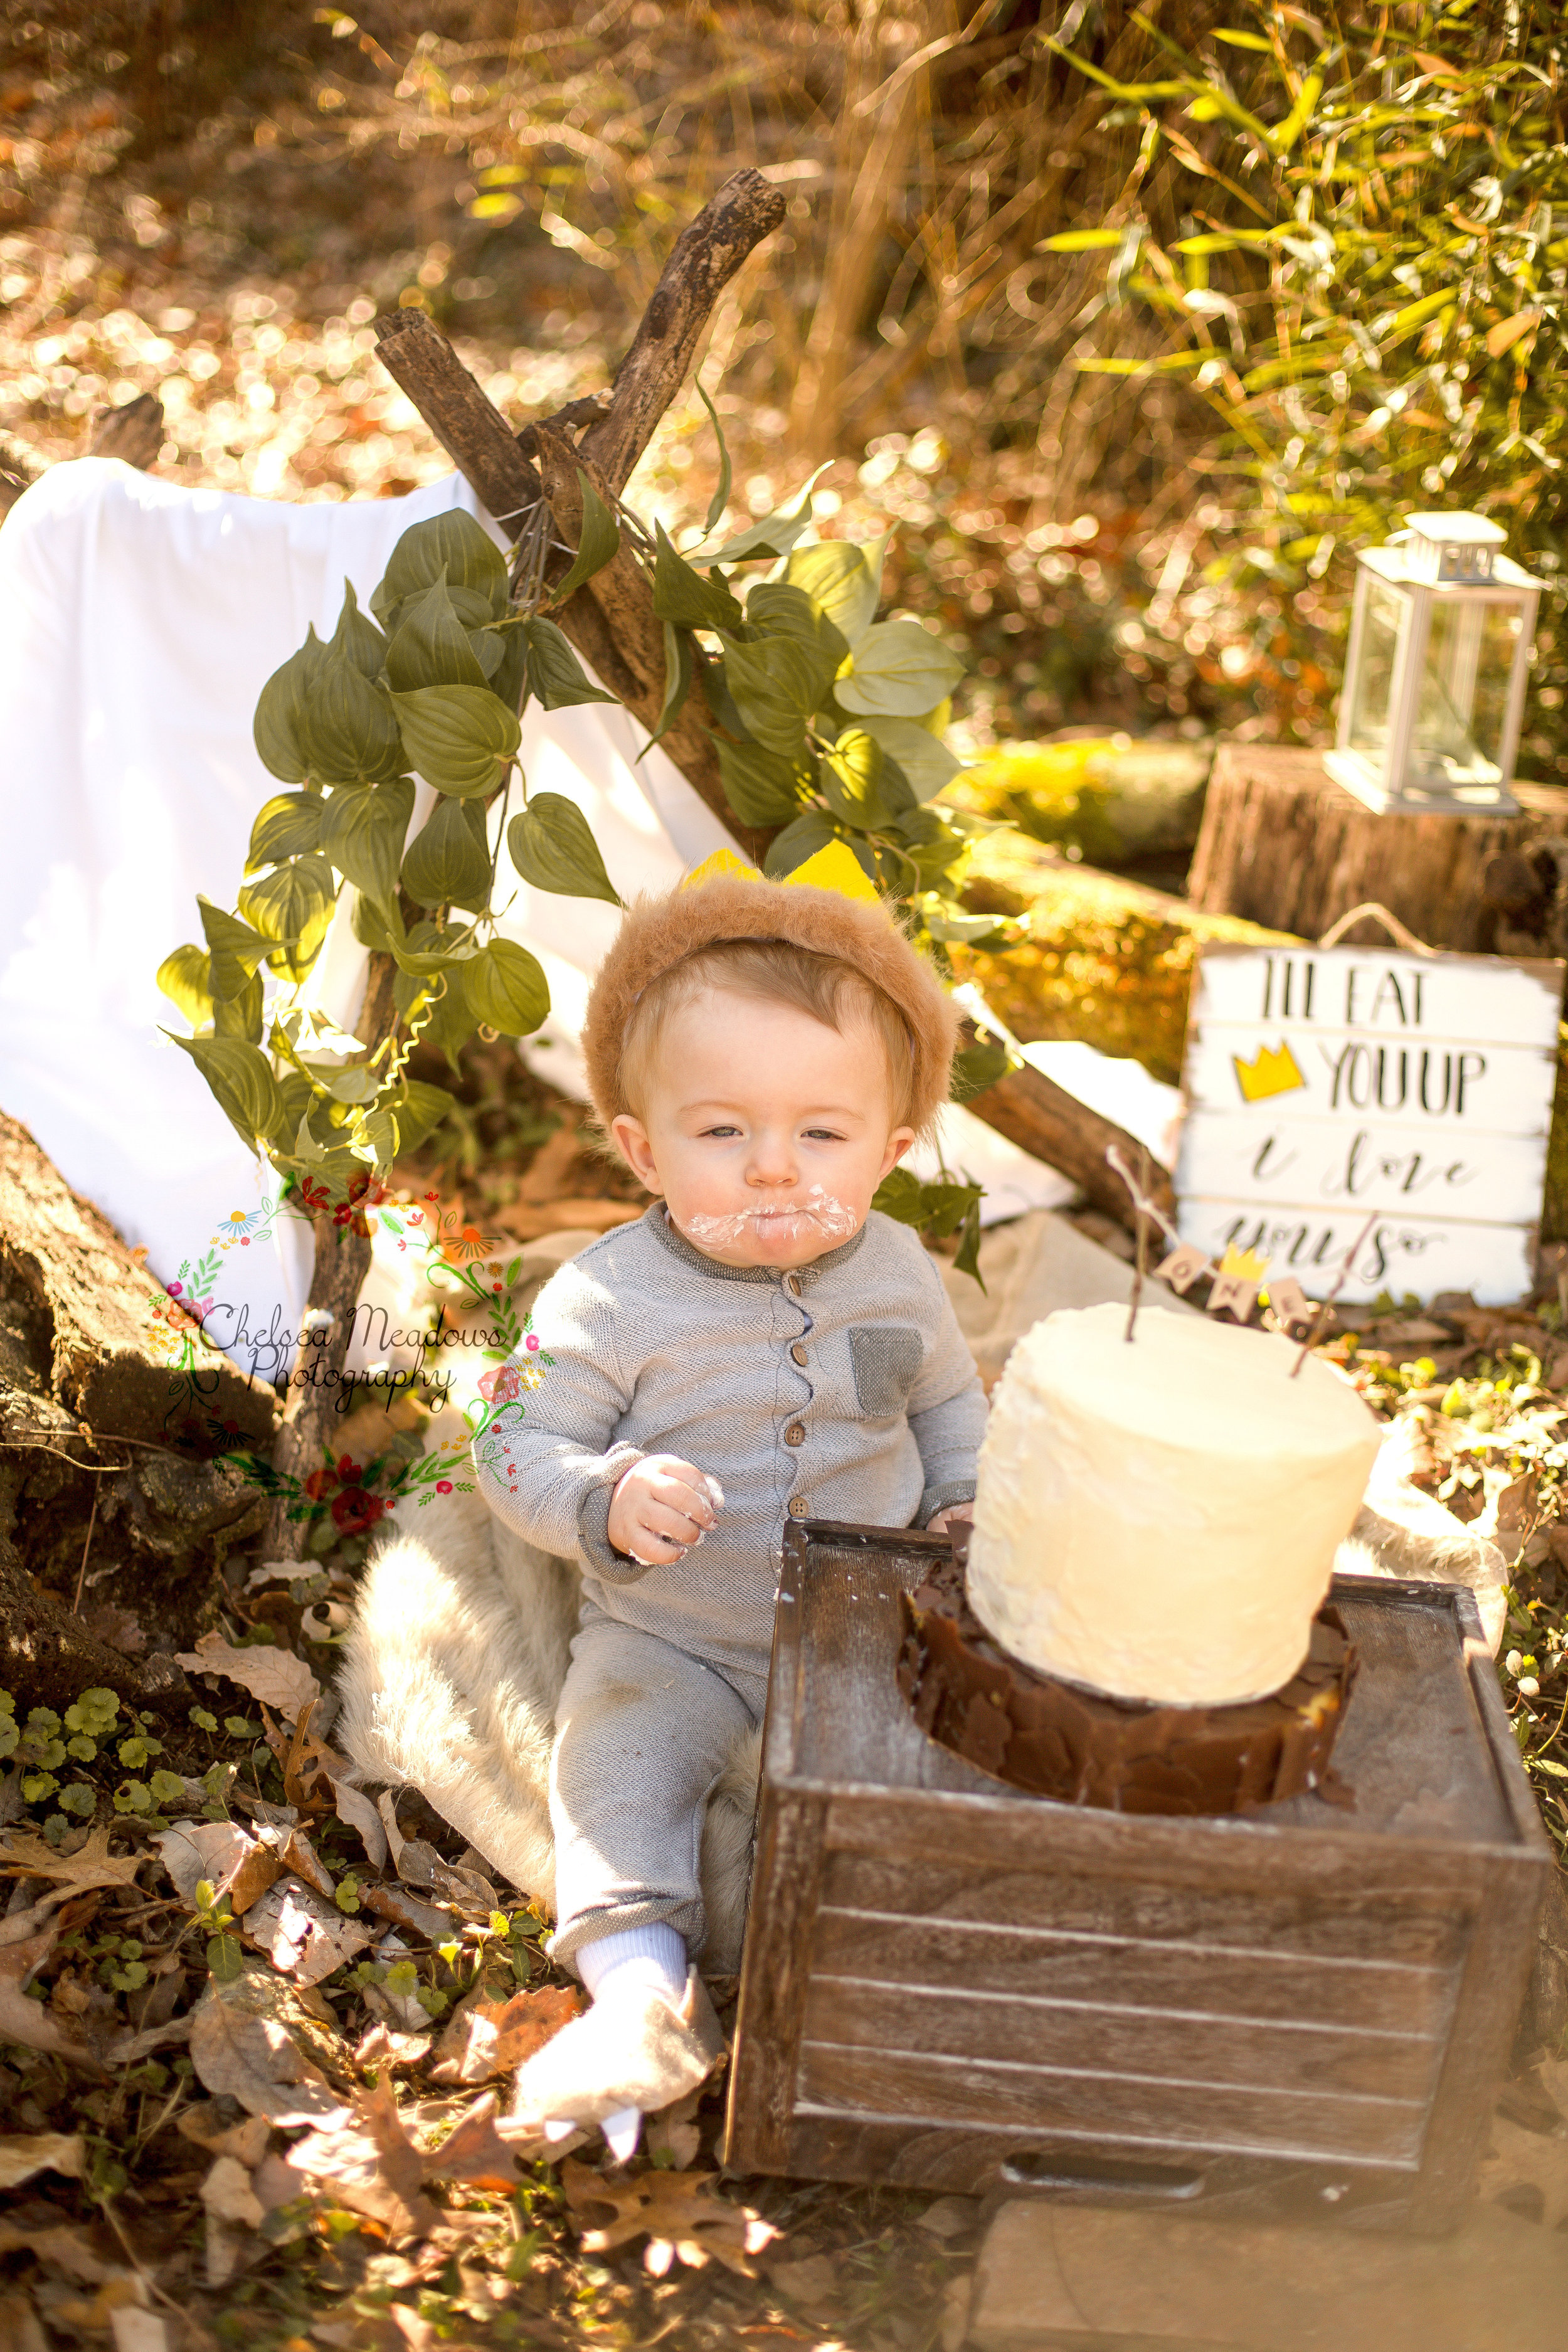 Matteo First Birthday Cake Smash - Nashville Family Photographer - Chelsea Meadows Photography (27).jpg